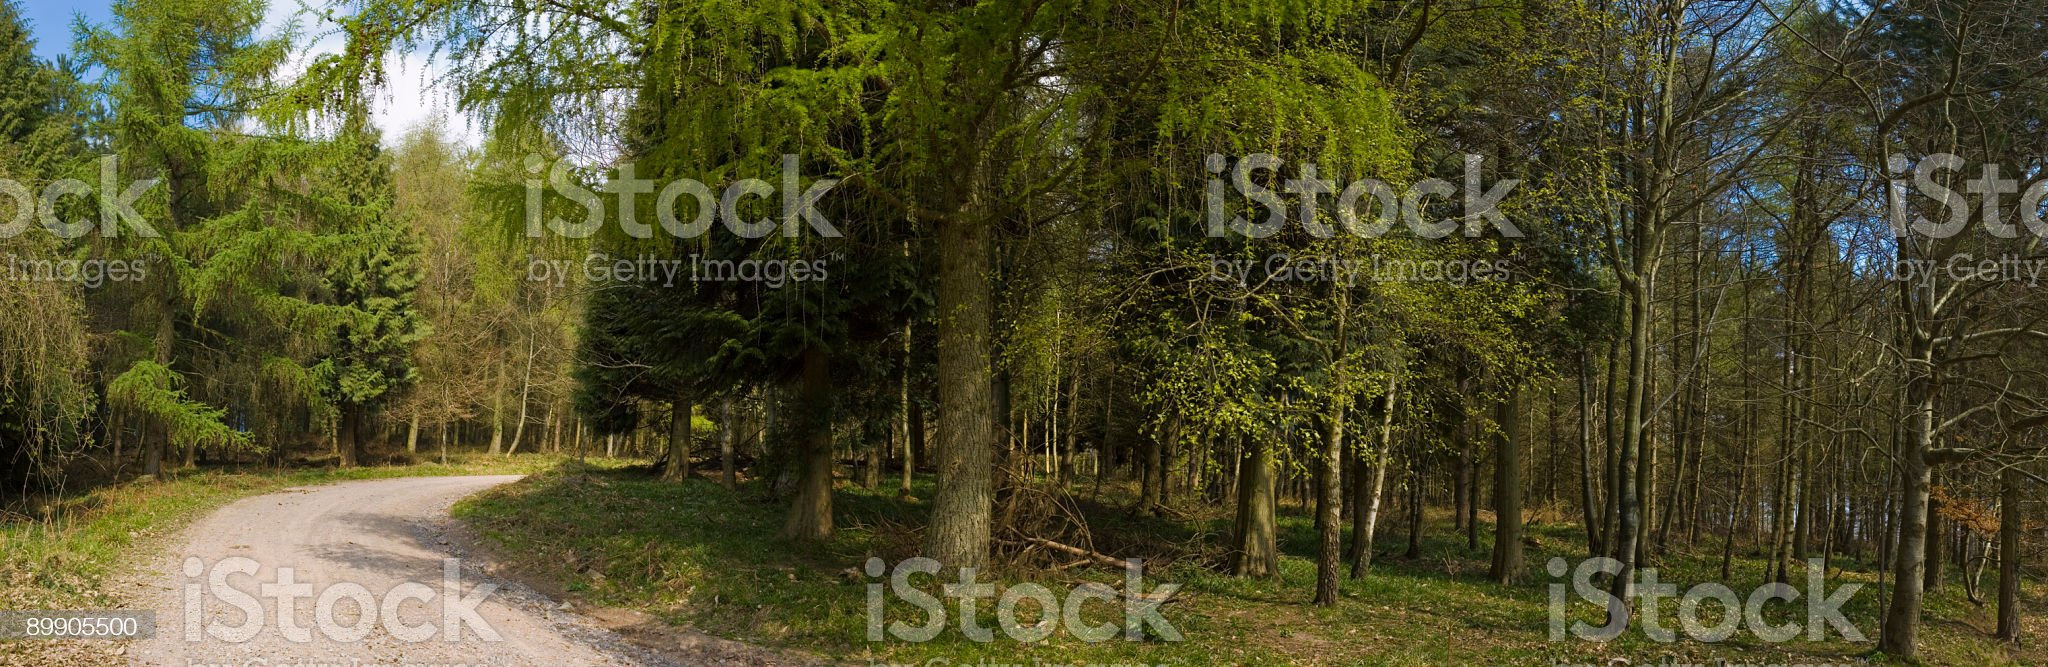 Forest fire road royalty-free stock photo